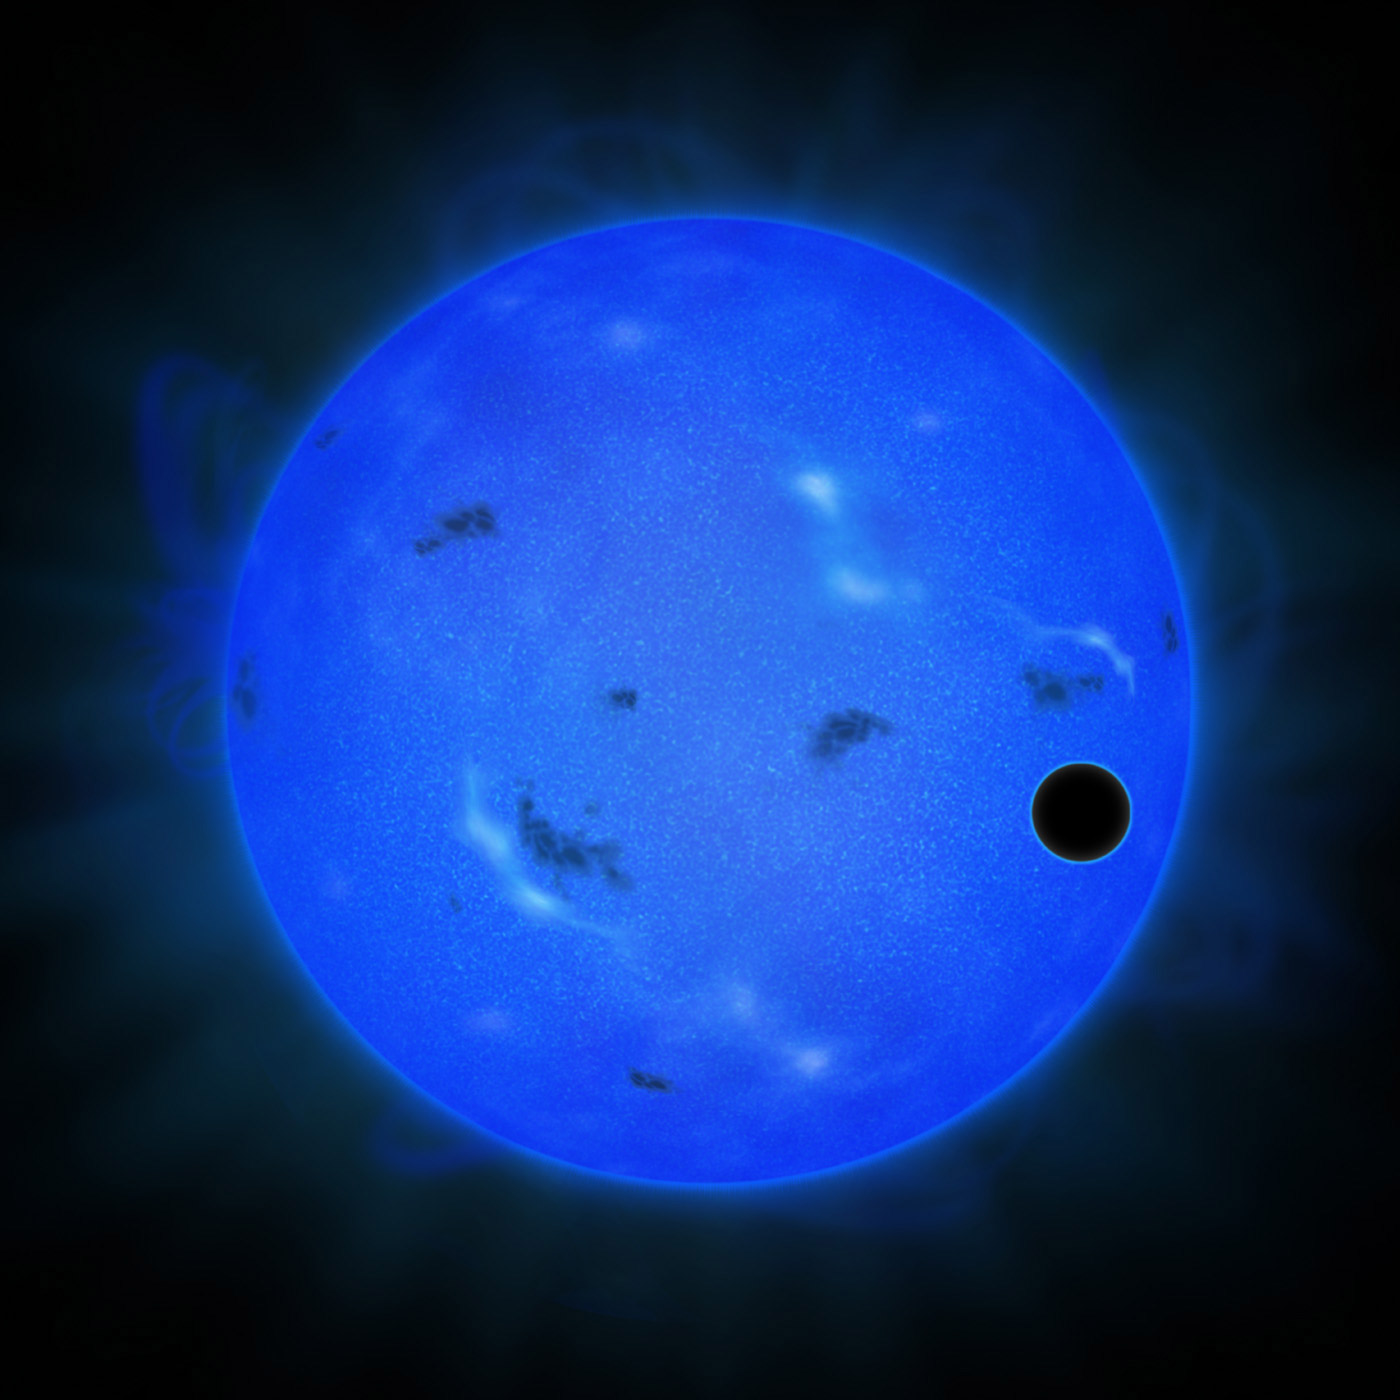 alien water planet - photo #1